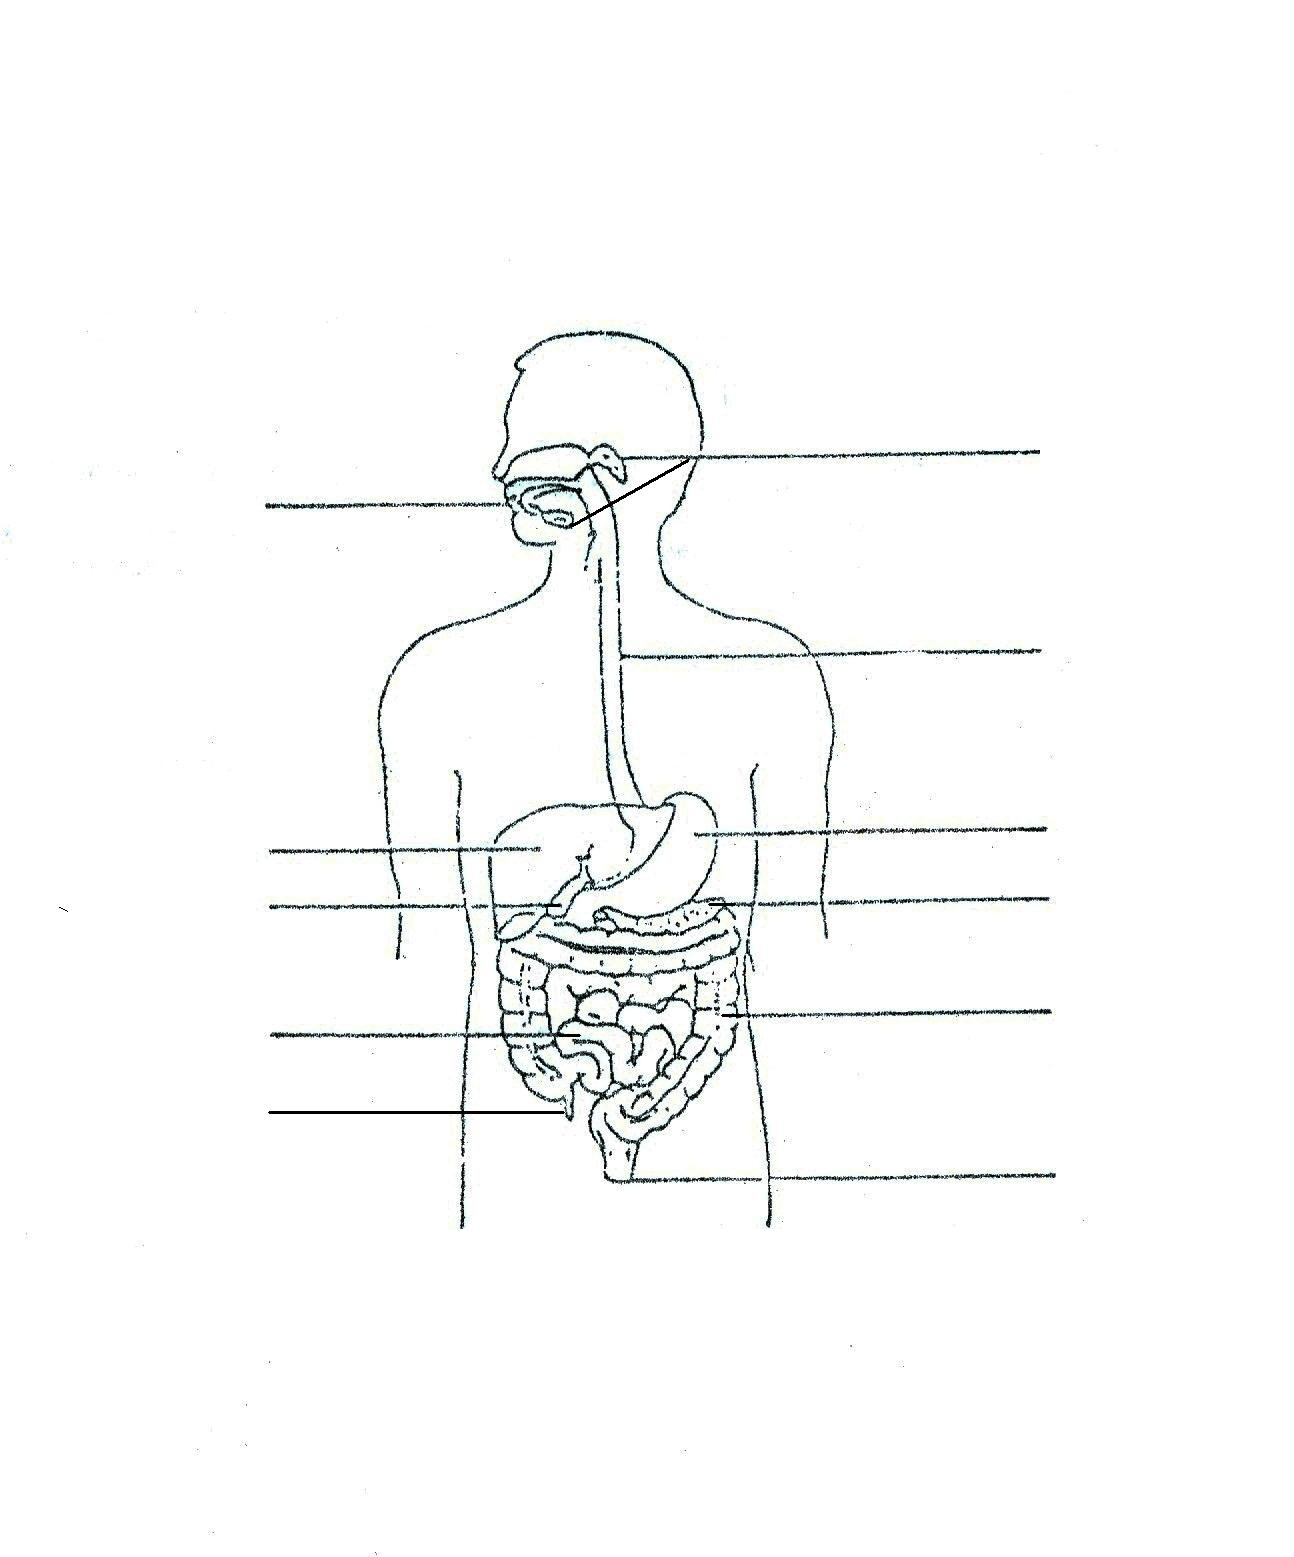 Digestive System Diagram Worksheet Digestive System Sketch At Paintingvalley Explore Collection